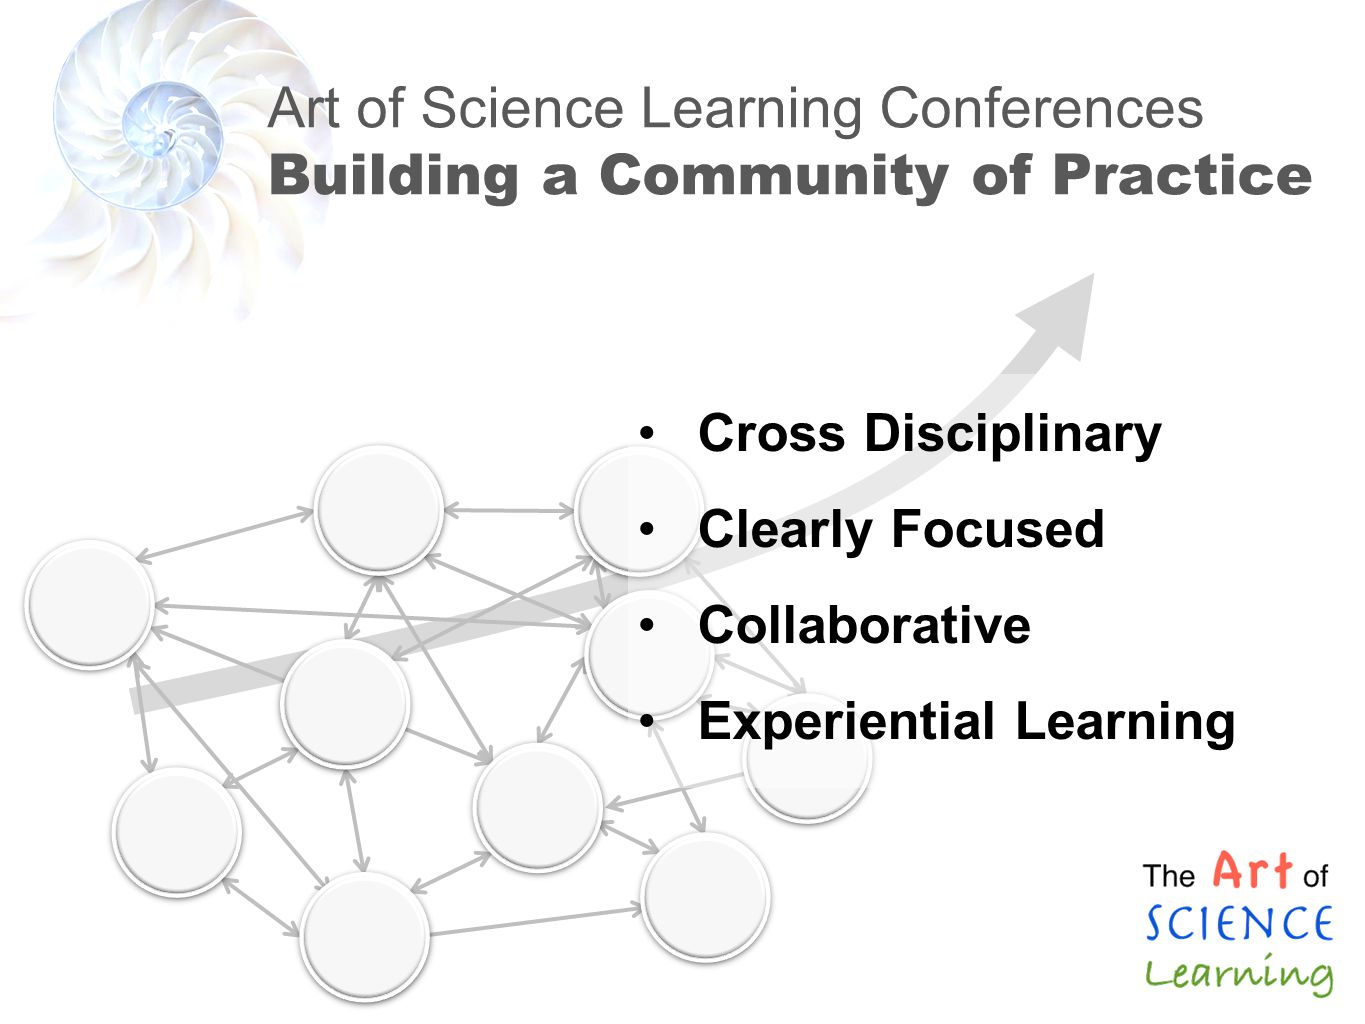 Art of Science Learning Conferences Building a Community of Practice Cross Disciplinary Clearly Focused Collaborative Experiential Learning